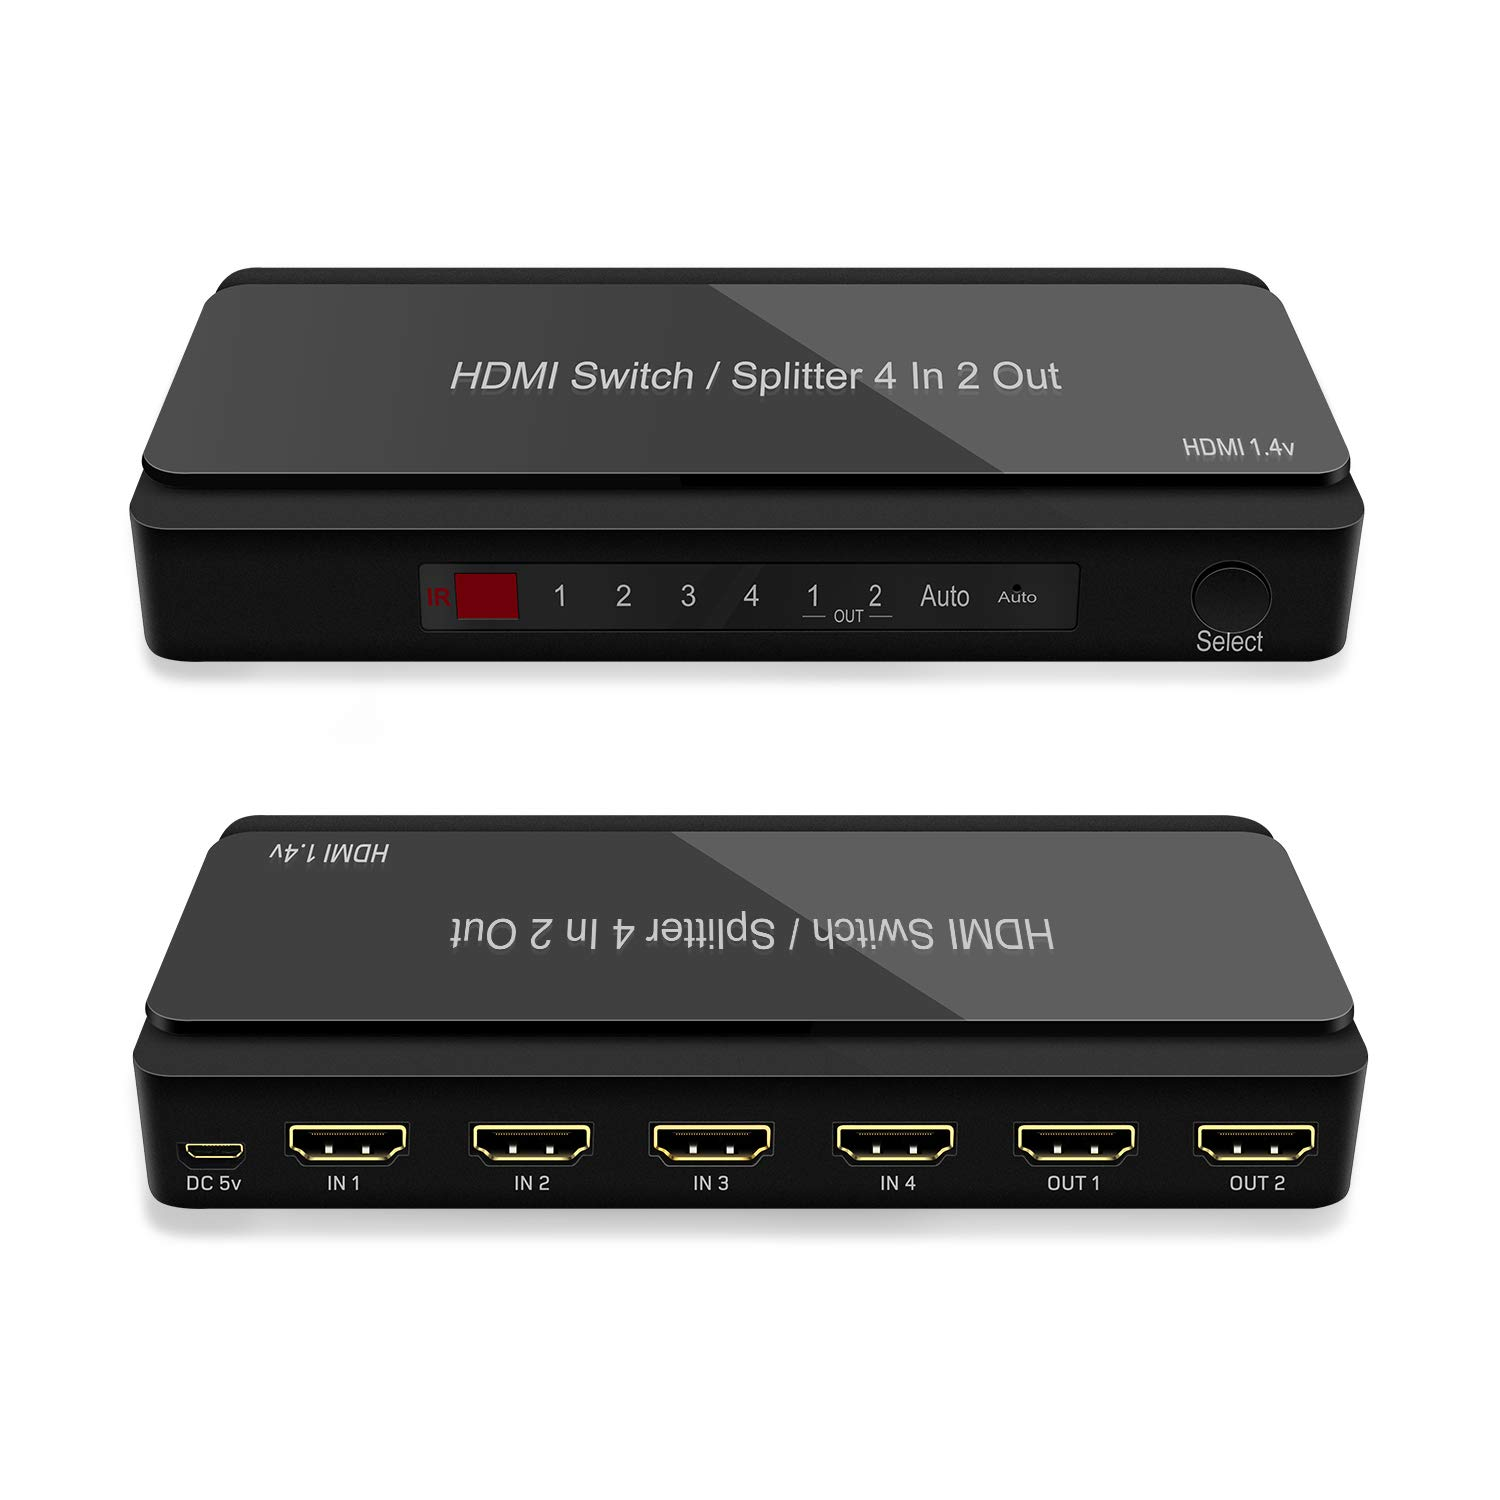 4 Port HDMI Switcher, 4 in 2 Out HDMI Switch with Remote and PIP Function Support 4k@30hz, 3D and Auto/Not Auto Function Compatible for Roku, PS3, PS4, Xbox, Apple TV DVD (4 in 2 Out HDMI Splitter) by Dingsun